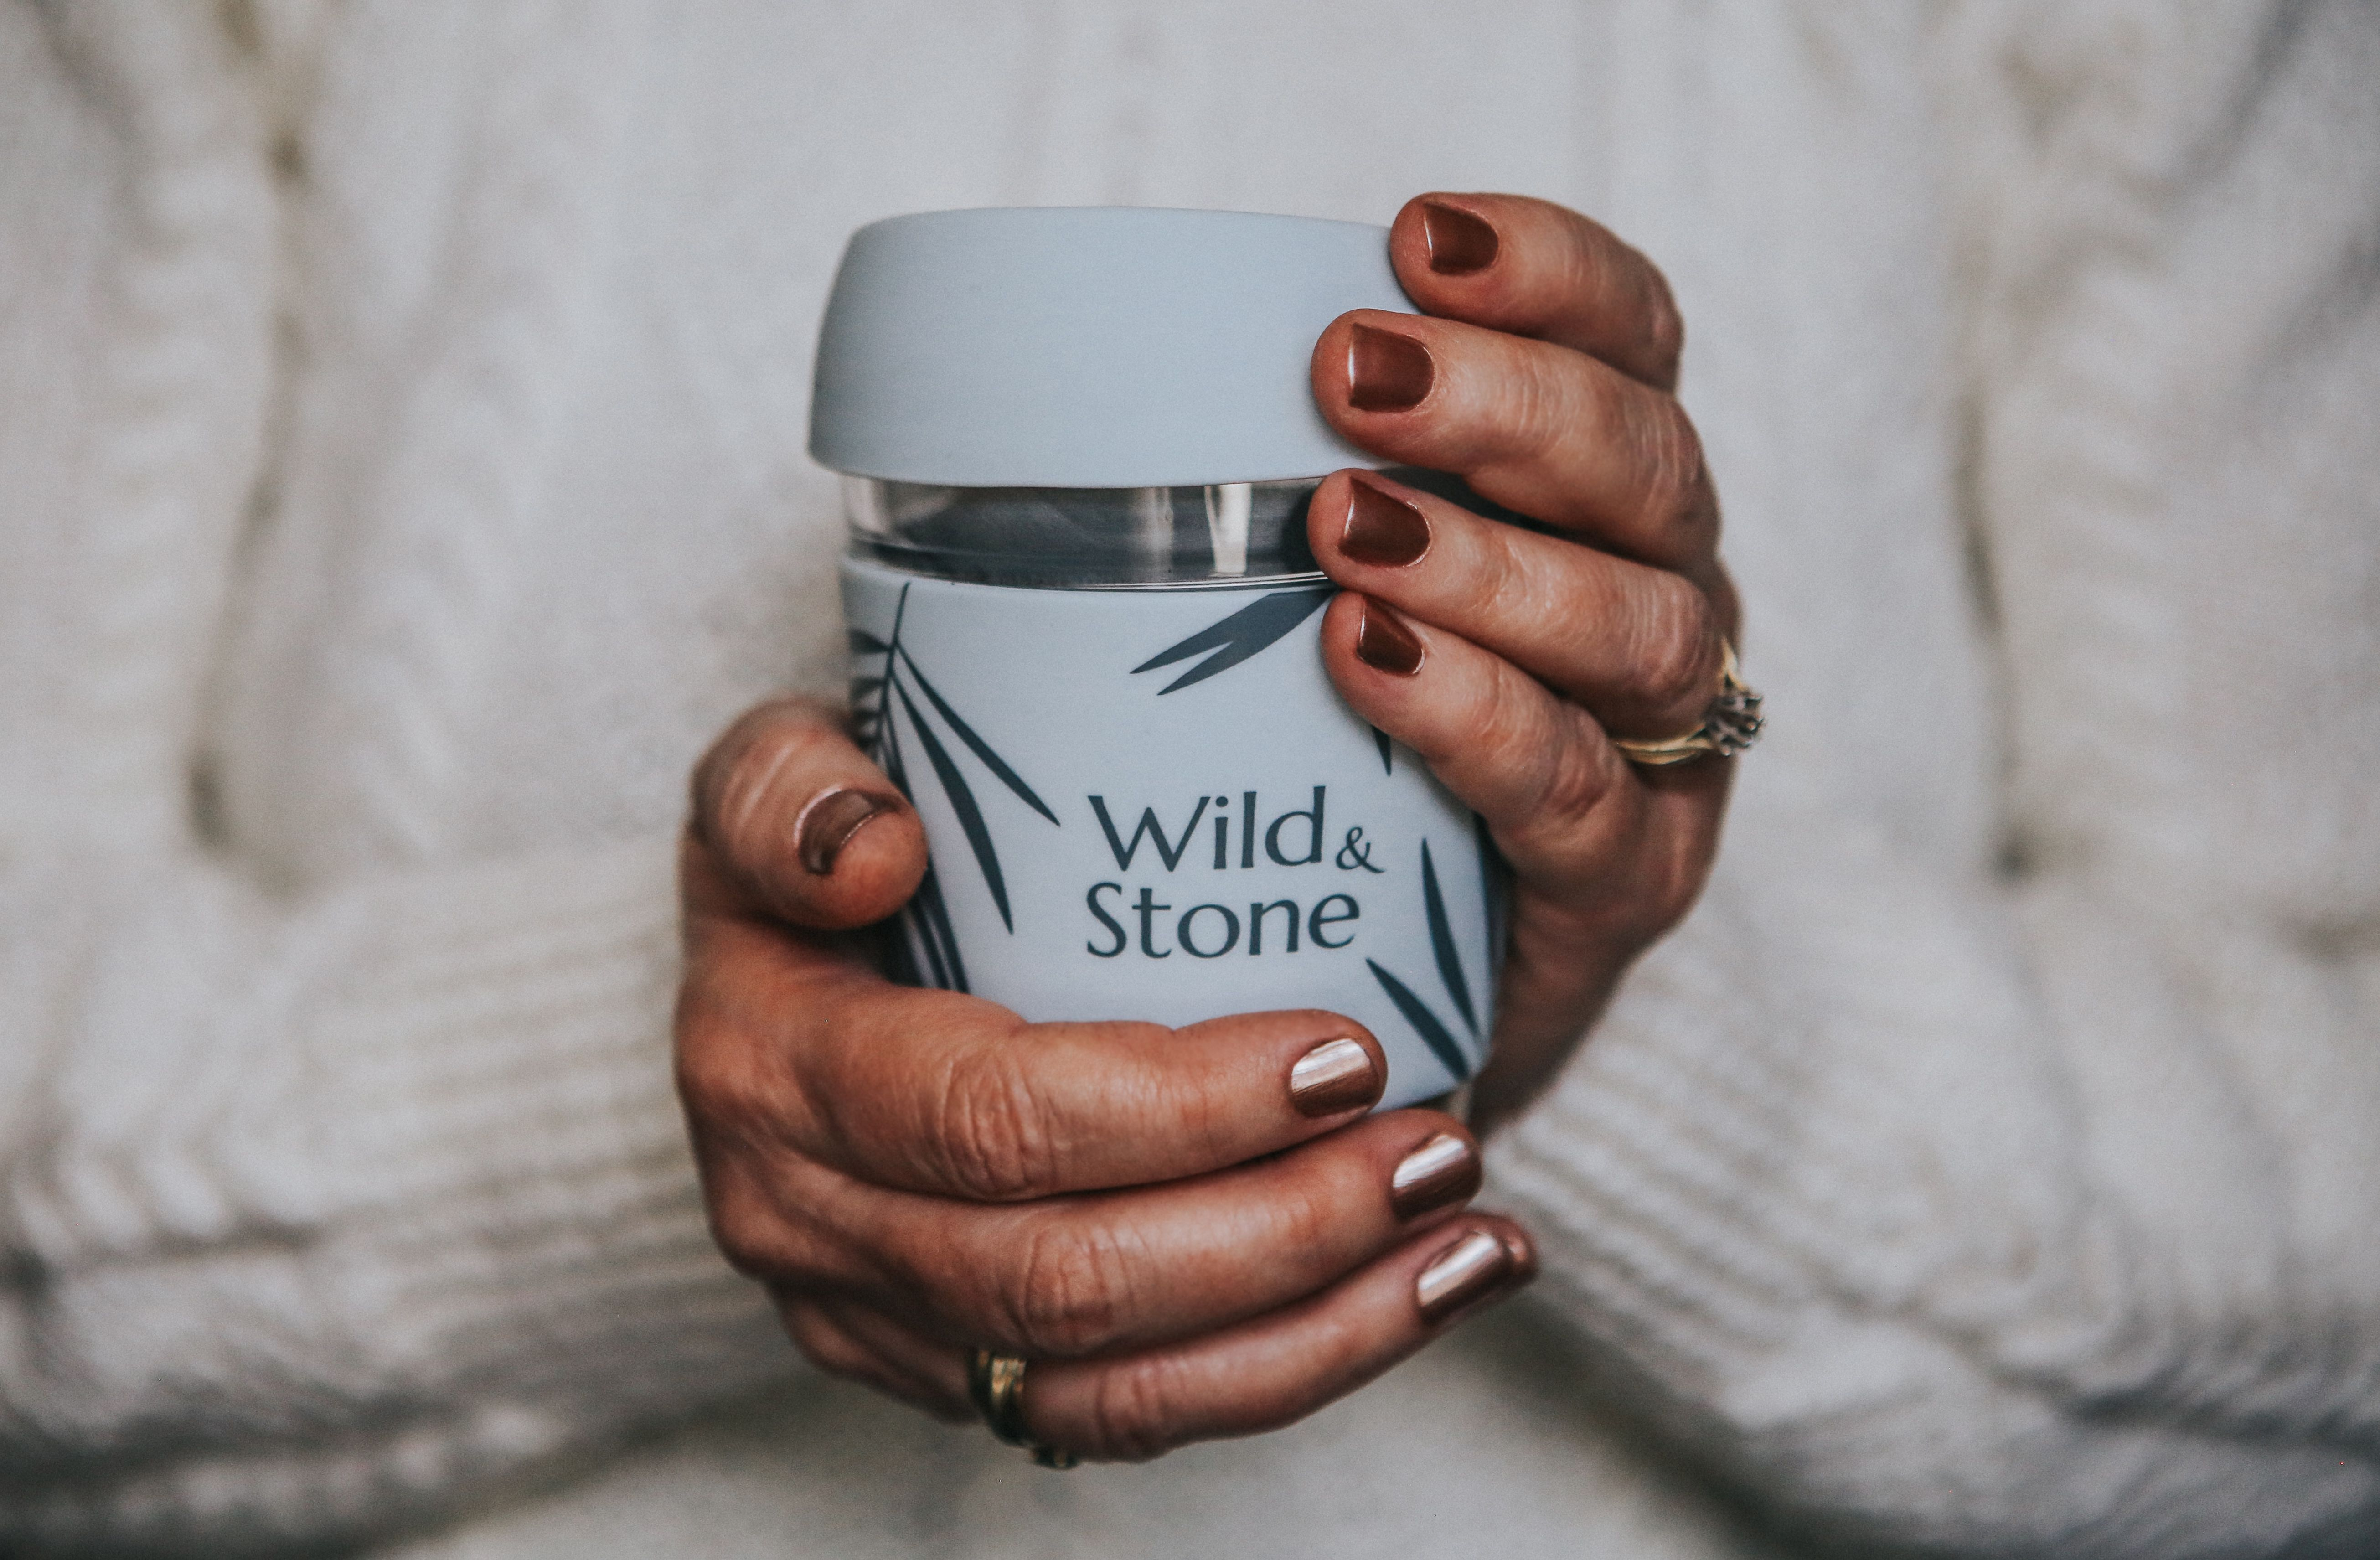 Wild & Stone reusable cup